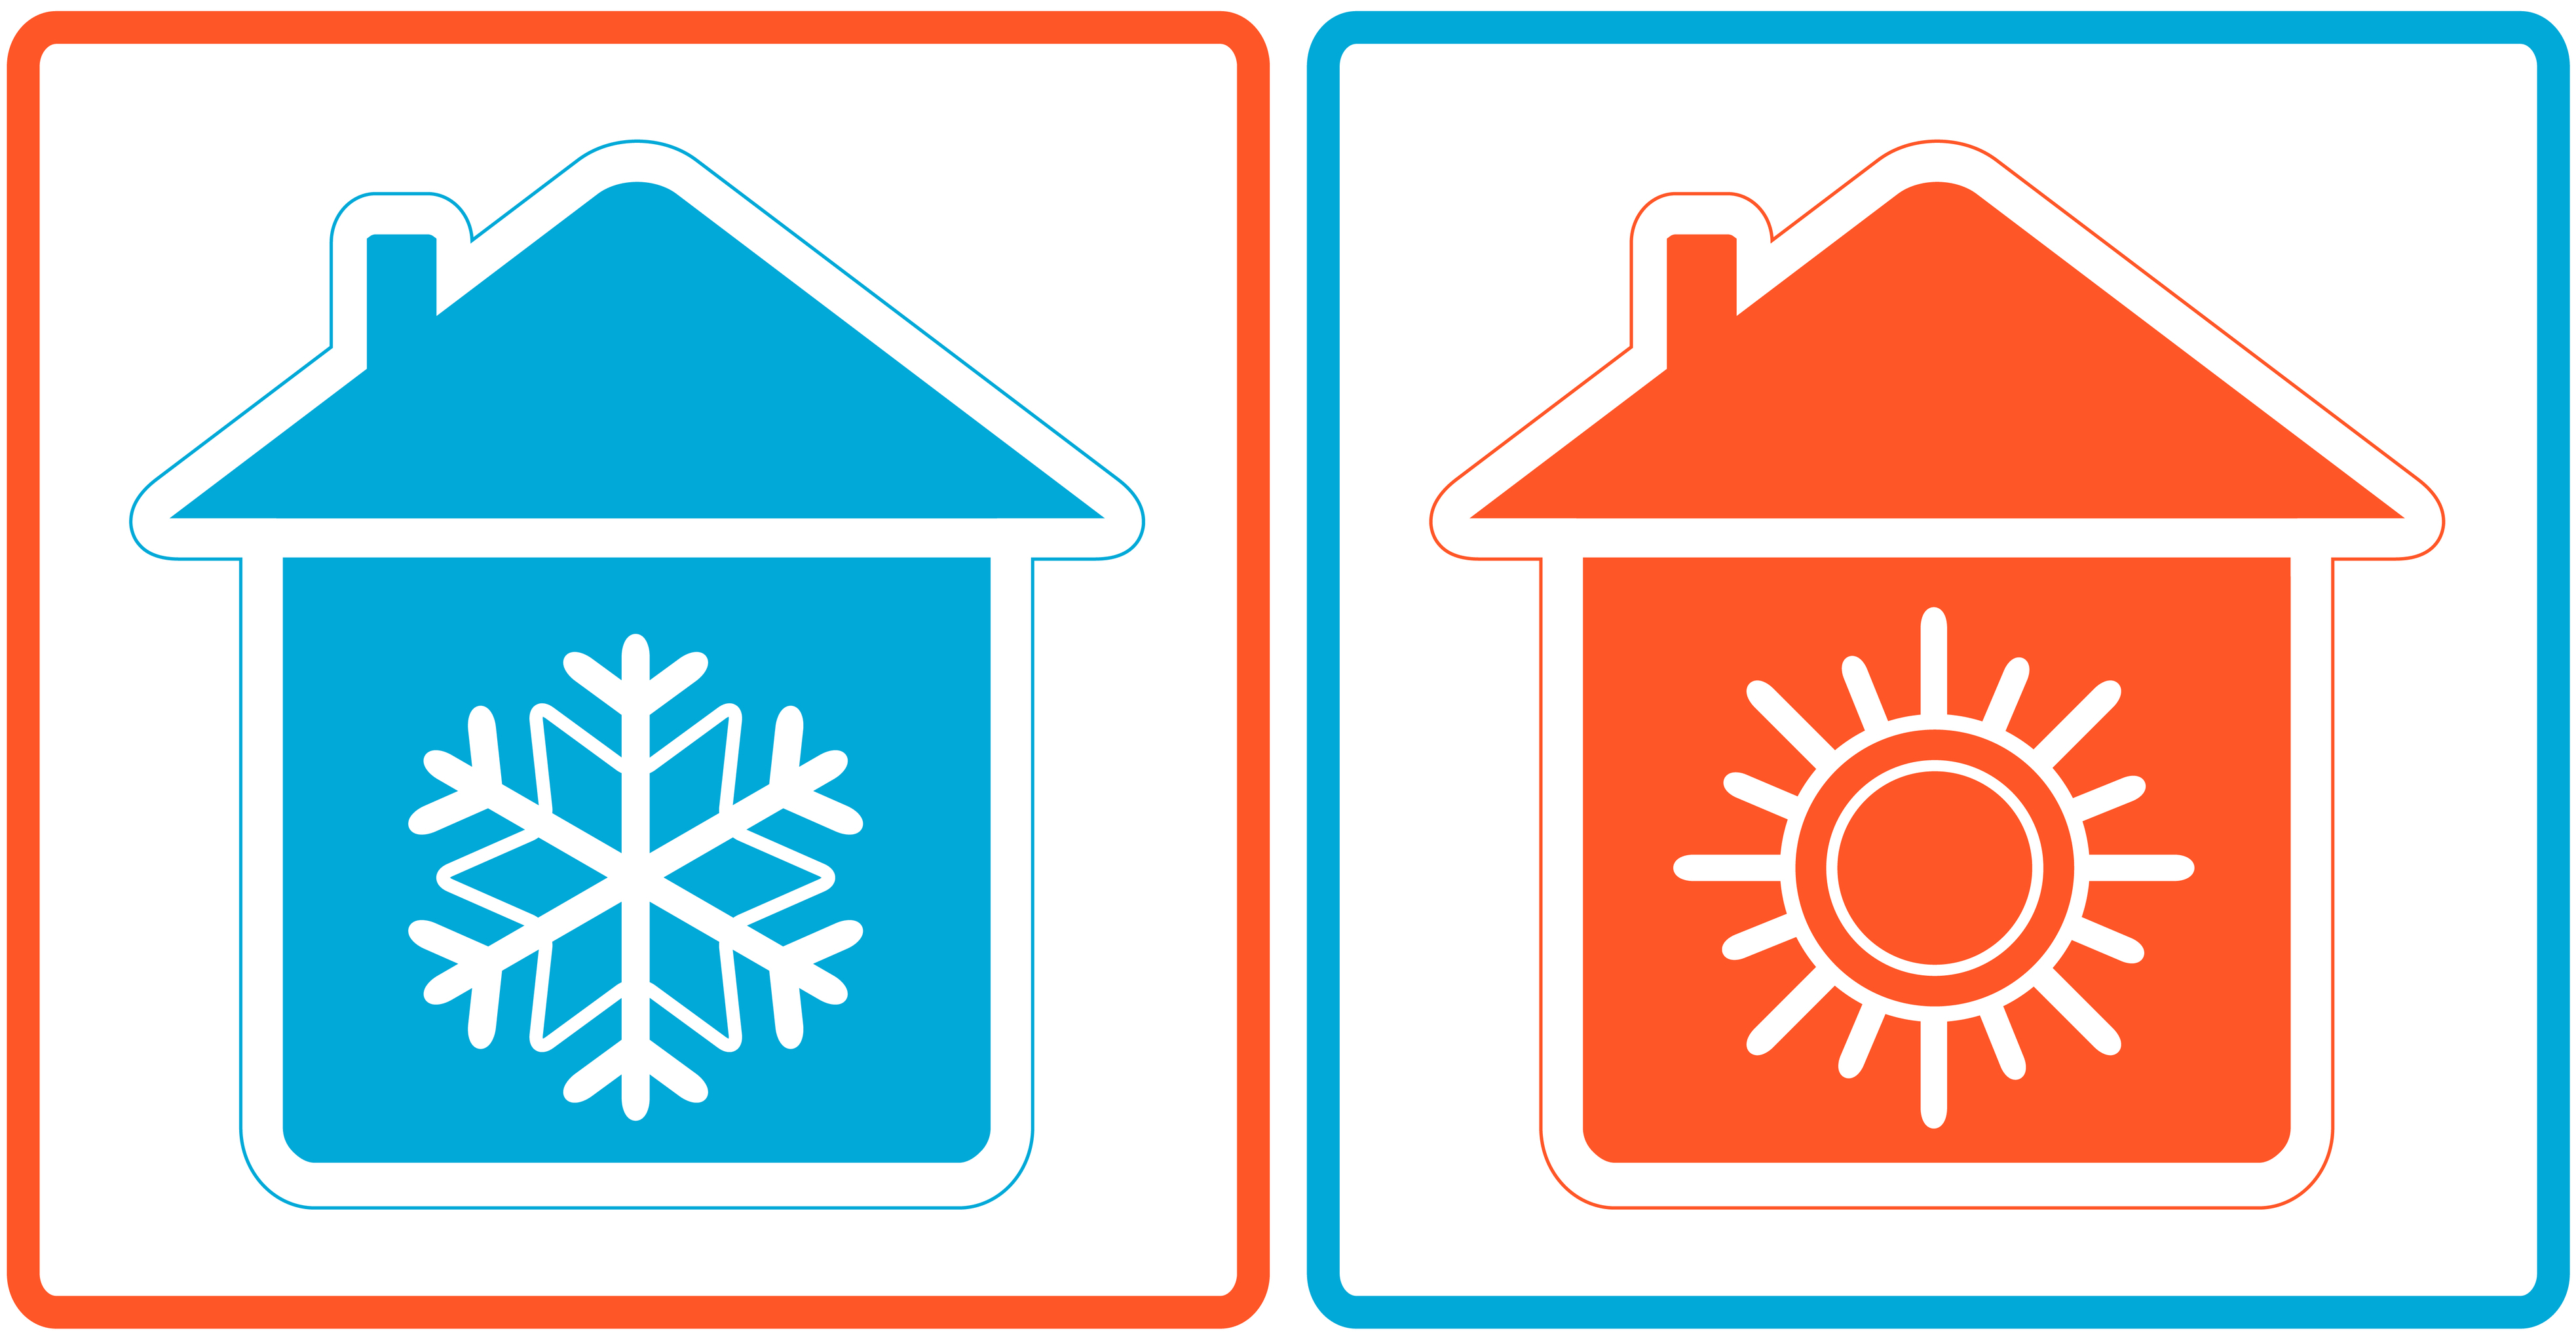 snowflake-and-sunshine-houses